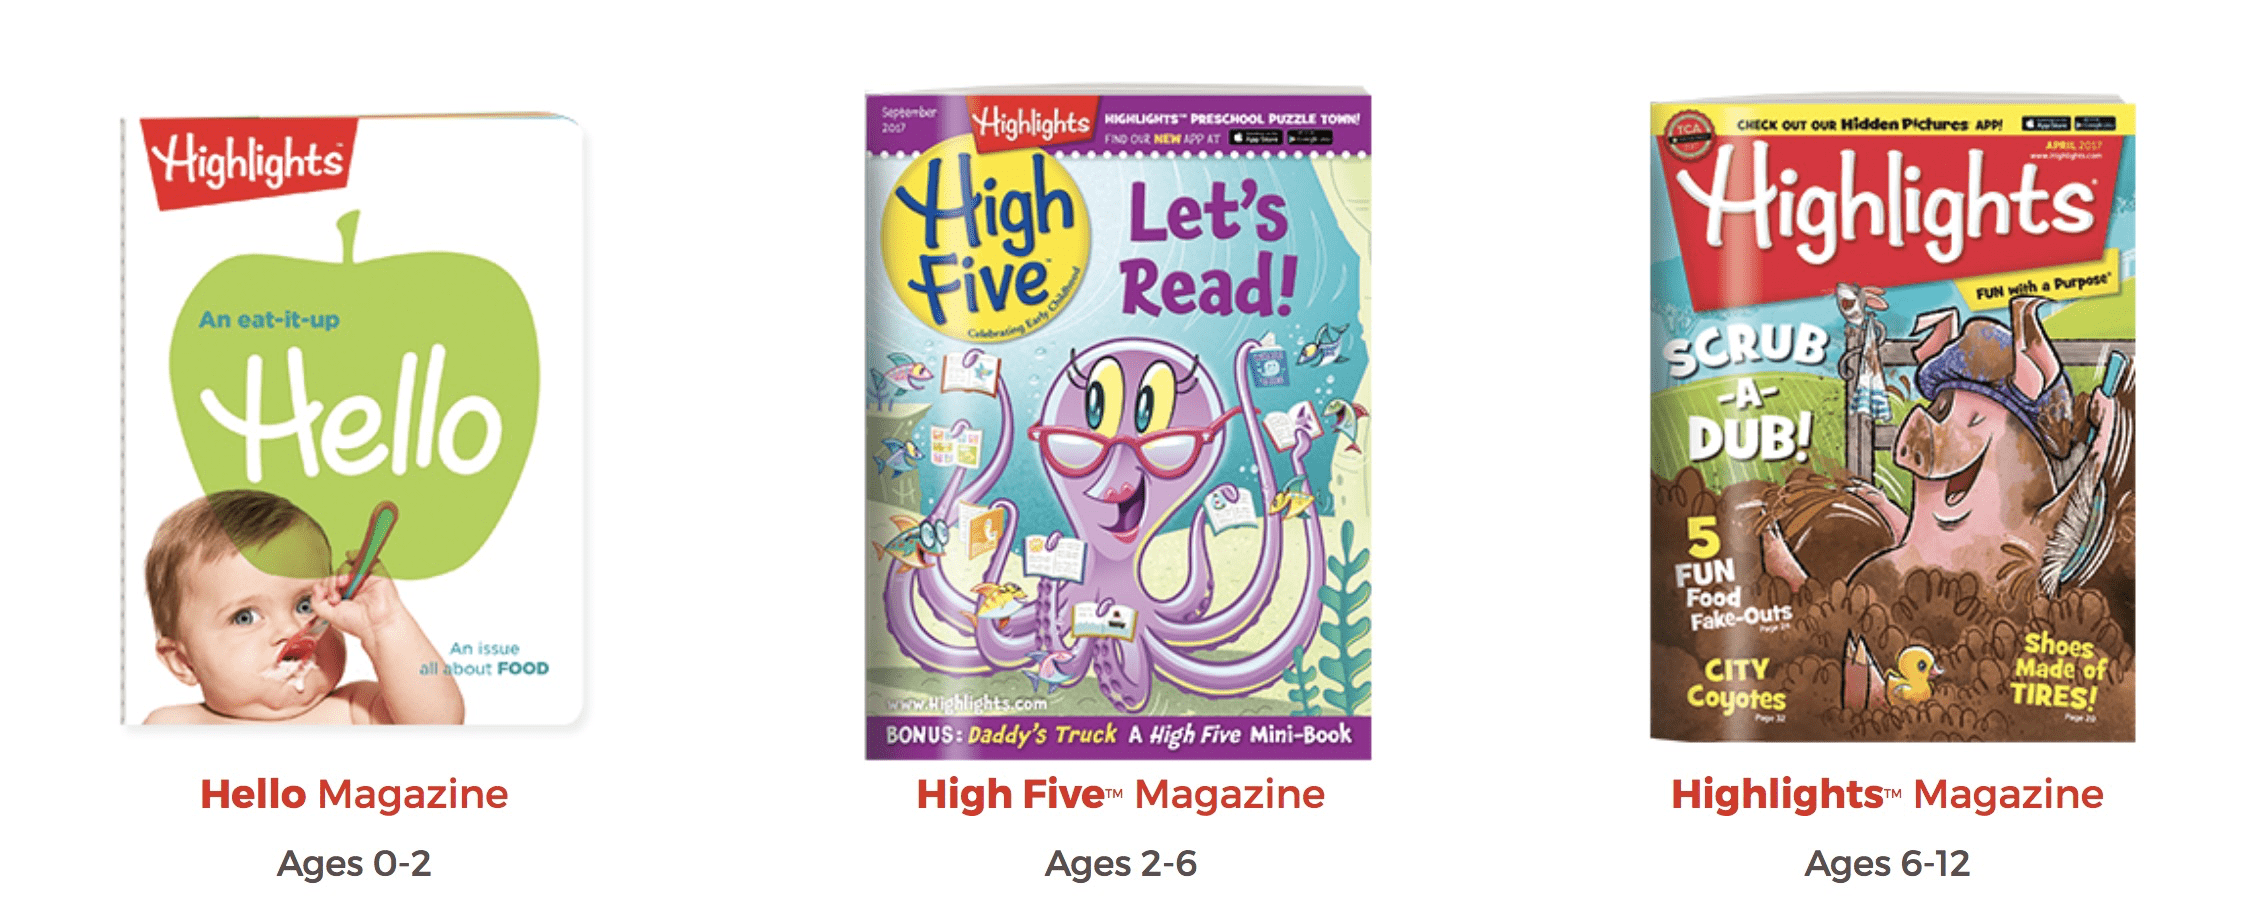 Highlights Magazine & Book Club Black Friday Deals: Up to $10 Off, Free Gifts, Try a Club FREE!